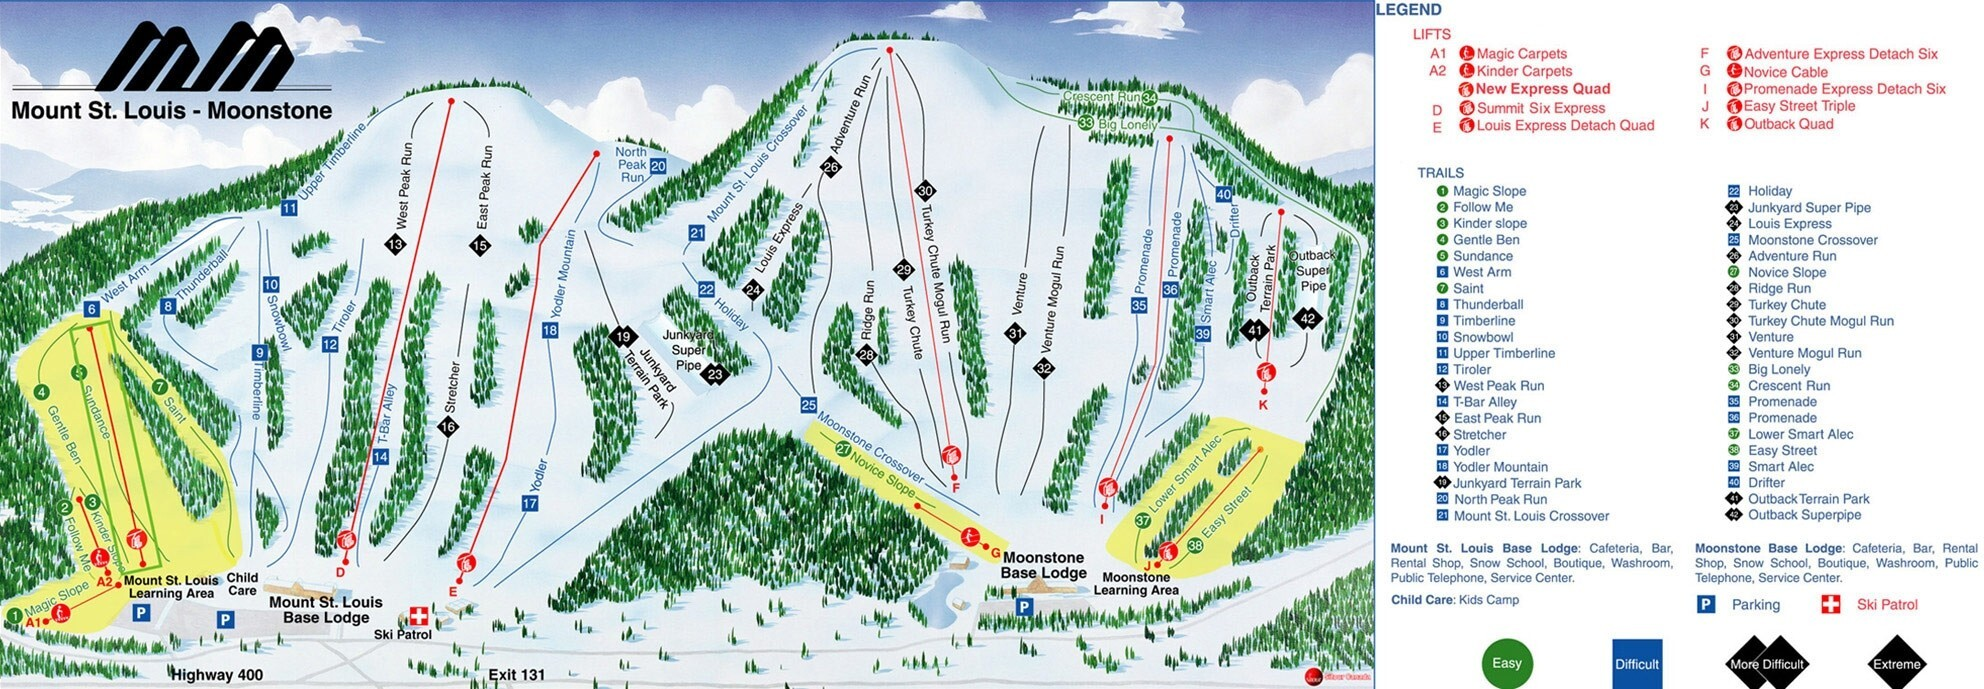 Mt St Louis Moonstone Piste / Trail Map